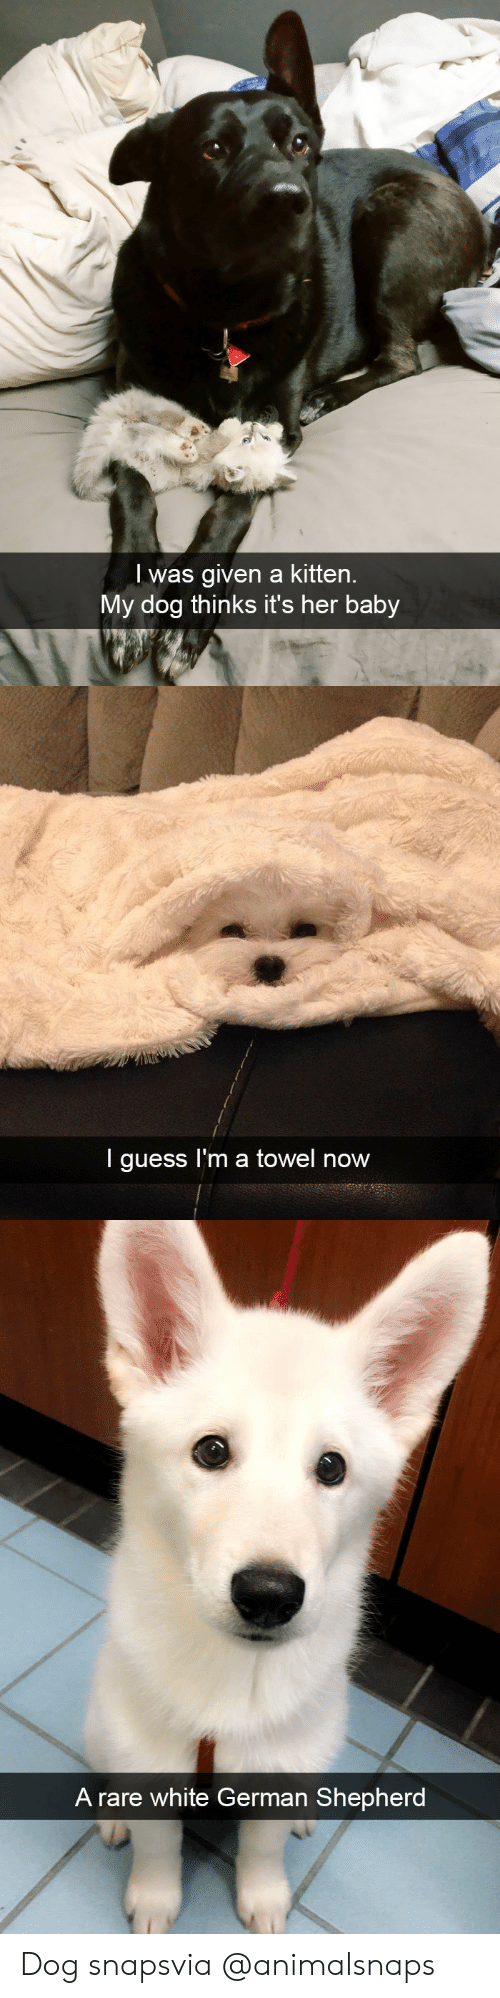 Target, Tumblr, and German Shepherd: l was given a kitten.  My dog thinks it's her baby   I guess I'm a towel now   A rare white German Shepherd Dog snapsvia @animalsnaps